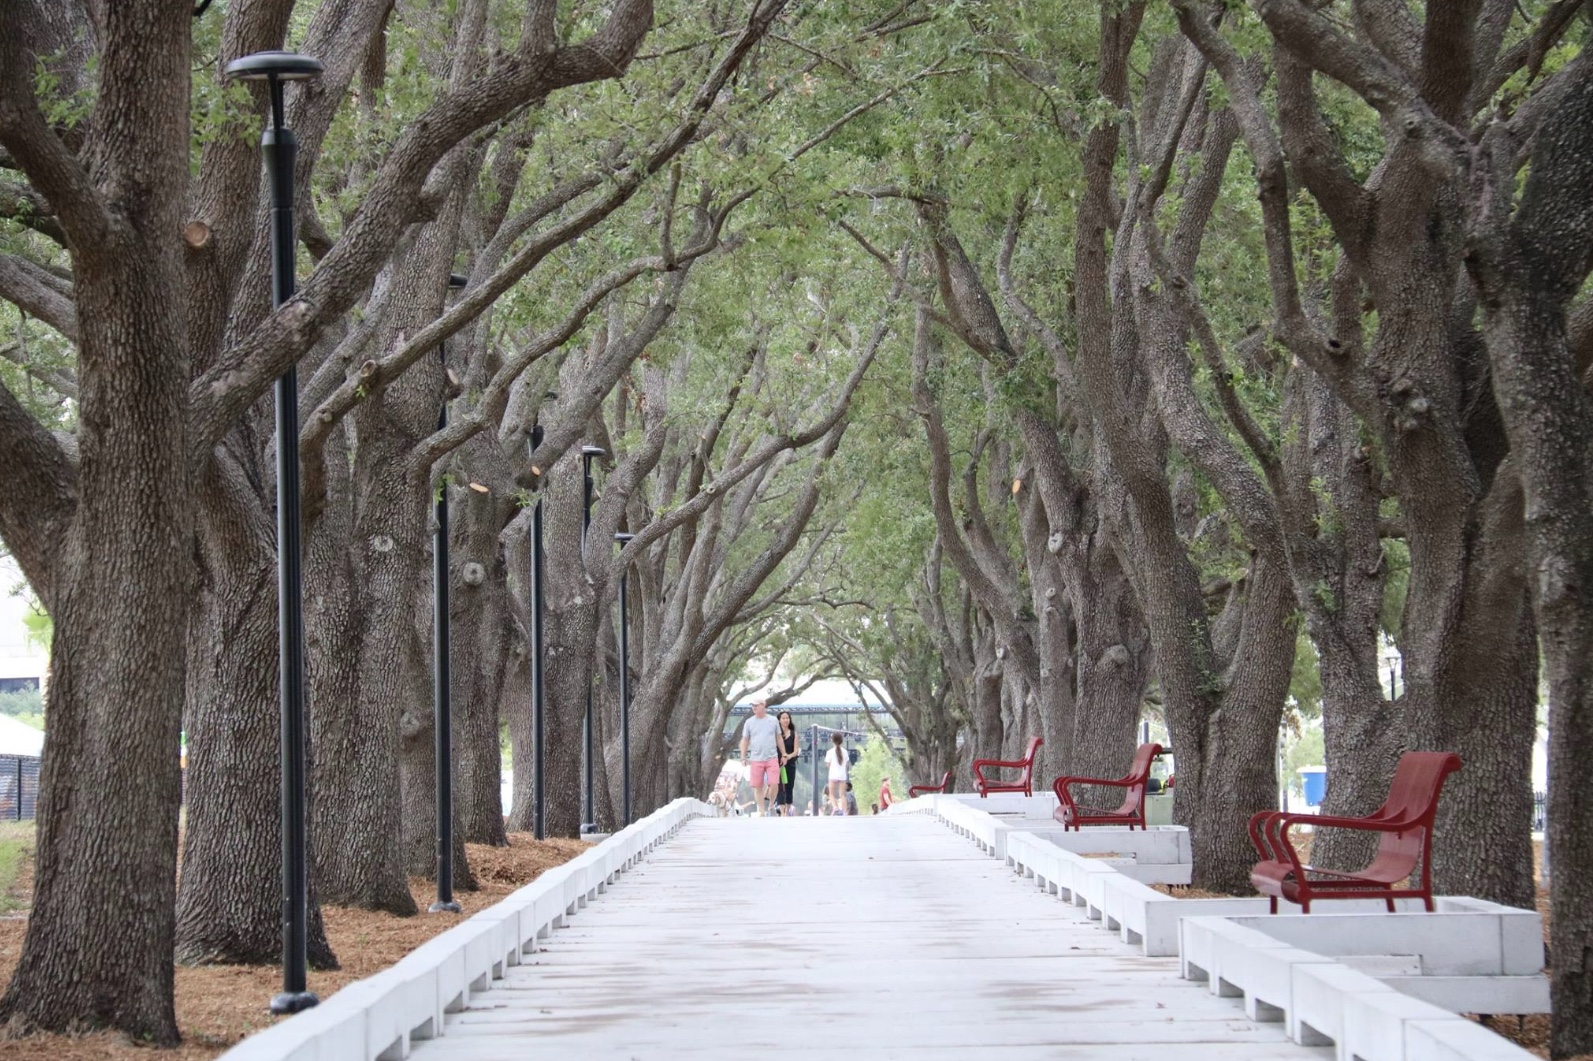 """Julian B. Lane Riverfront Park - Red benches line the historical walkway of trees referred to as the """"Walk of Shade""""; also, structures providing seating and shade in the basketball and sports areas of the Park.Image courtesy of Jason MacKenzie"""